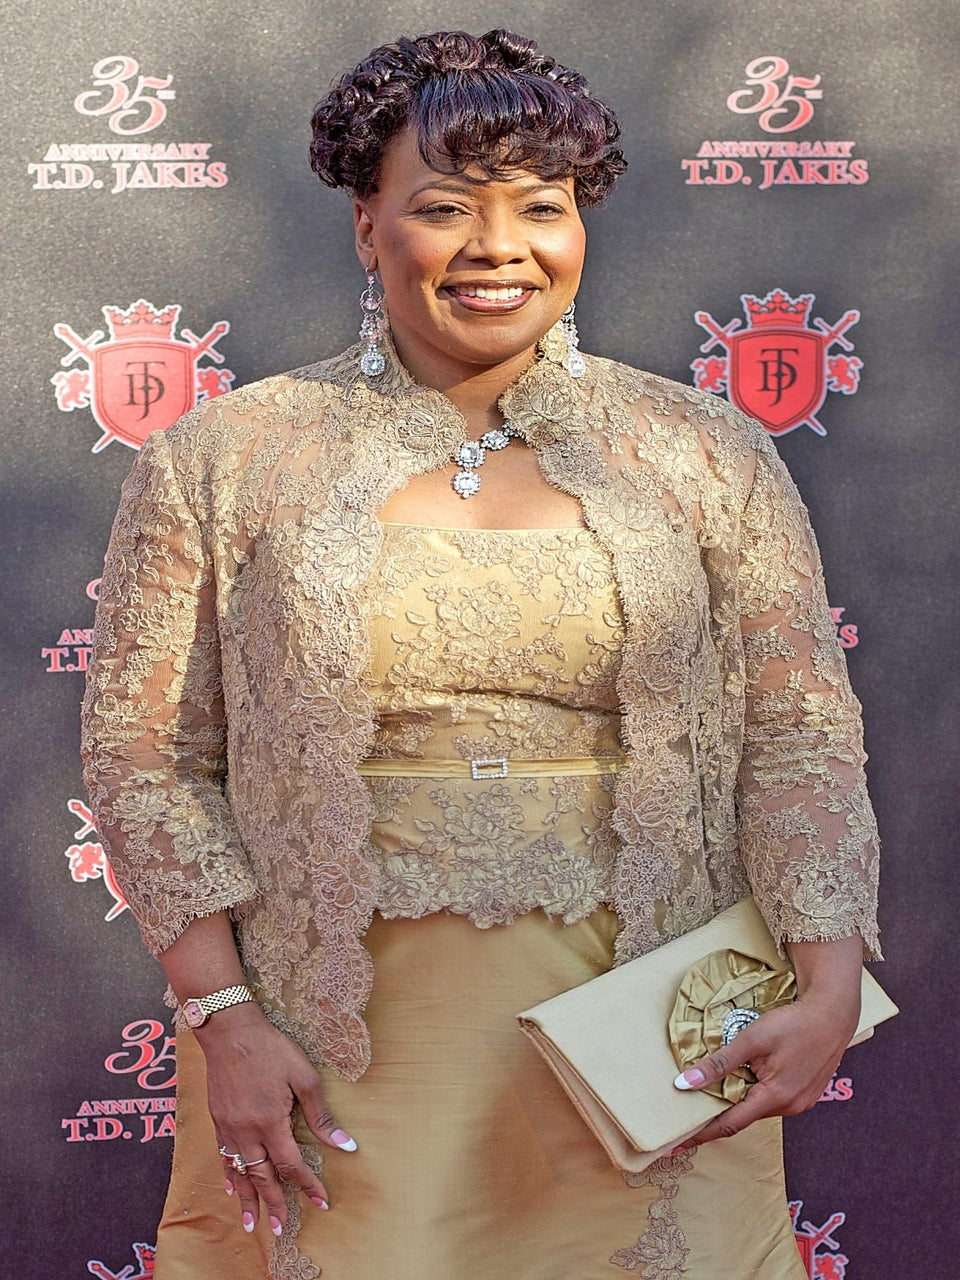 Bernice King Urges Women's Groups to Work Collectively